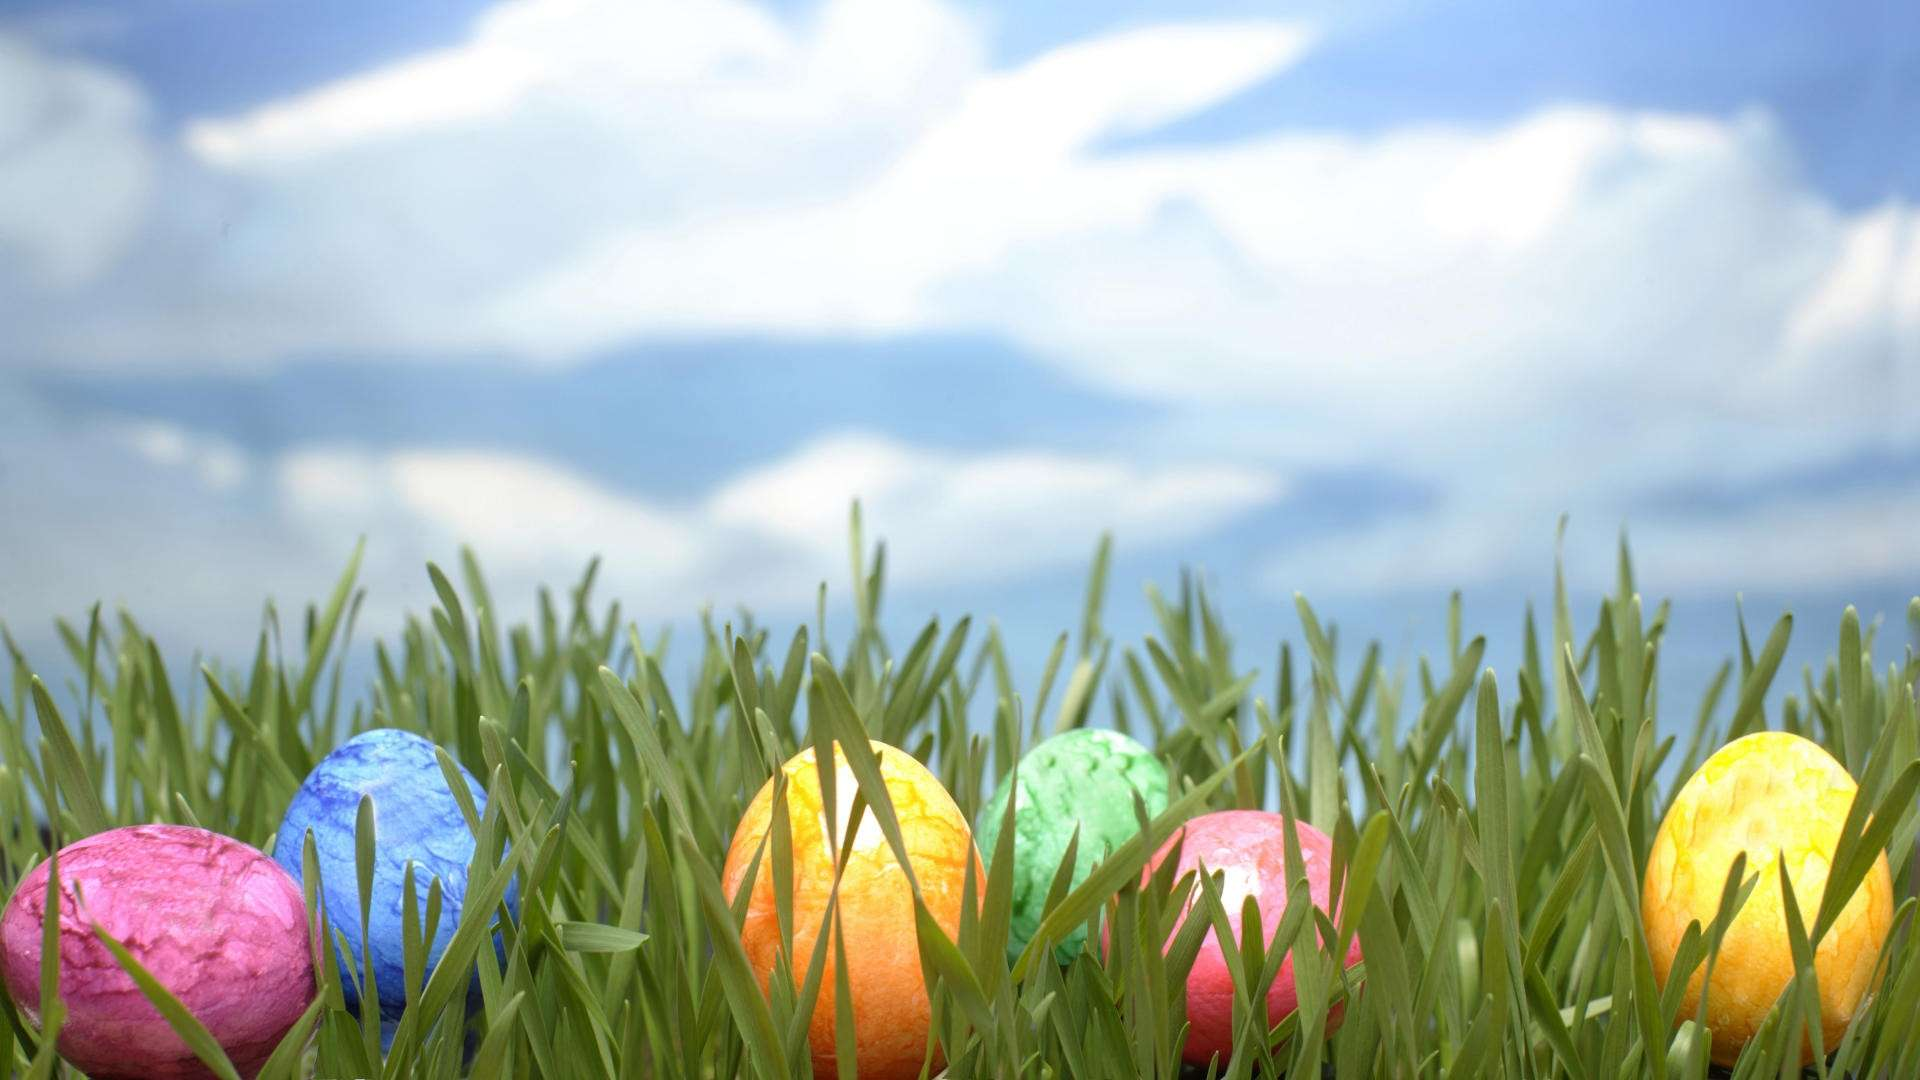 15 Happy Easter 2016 Wallpapers For Desktop   Educational 1920x1080